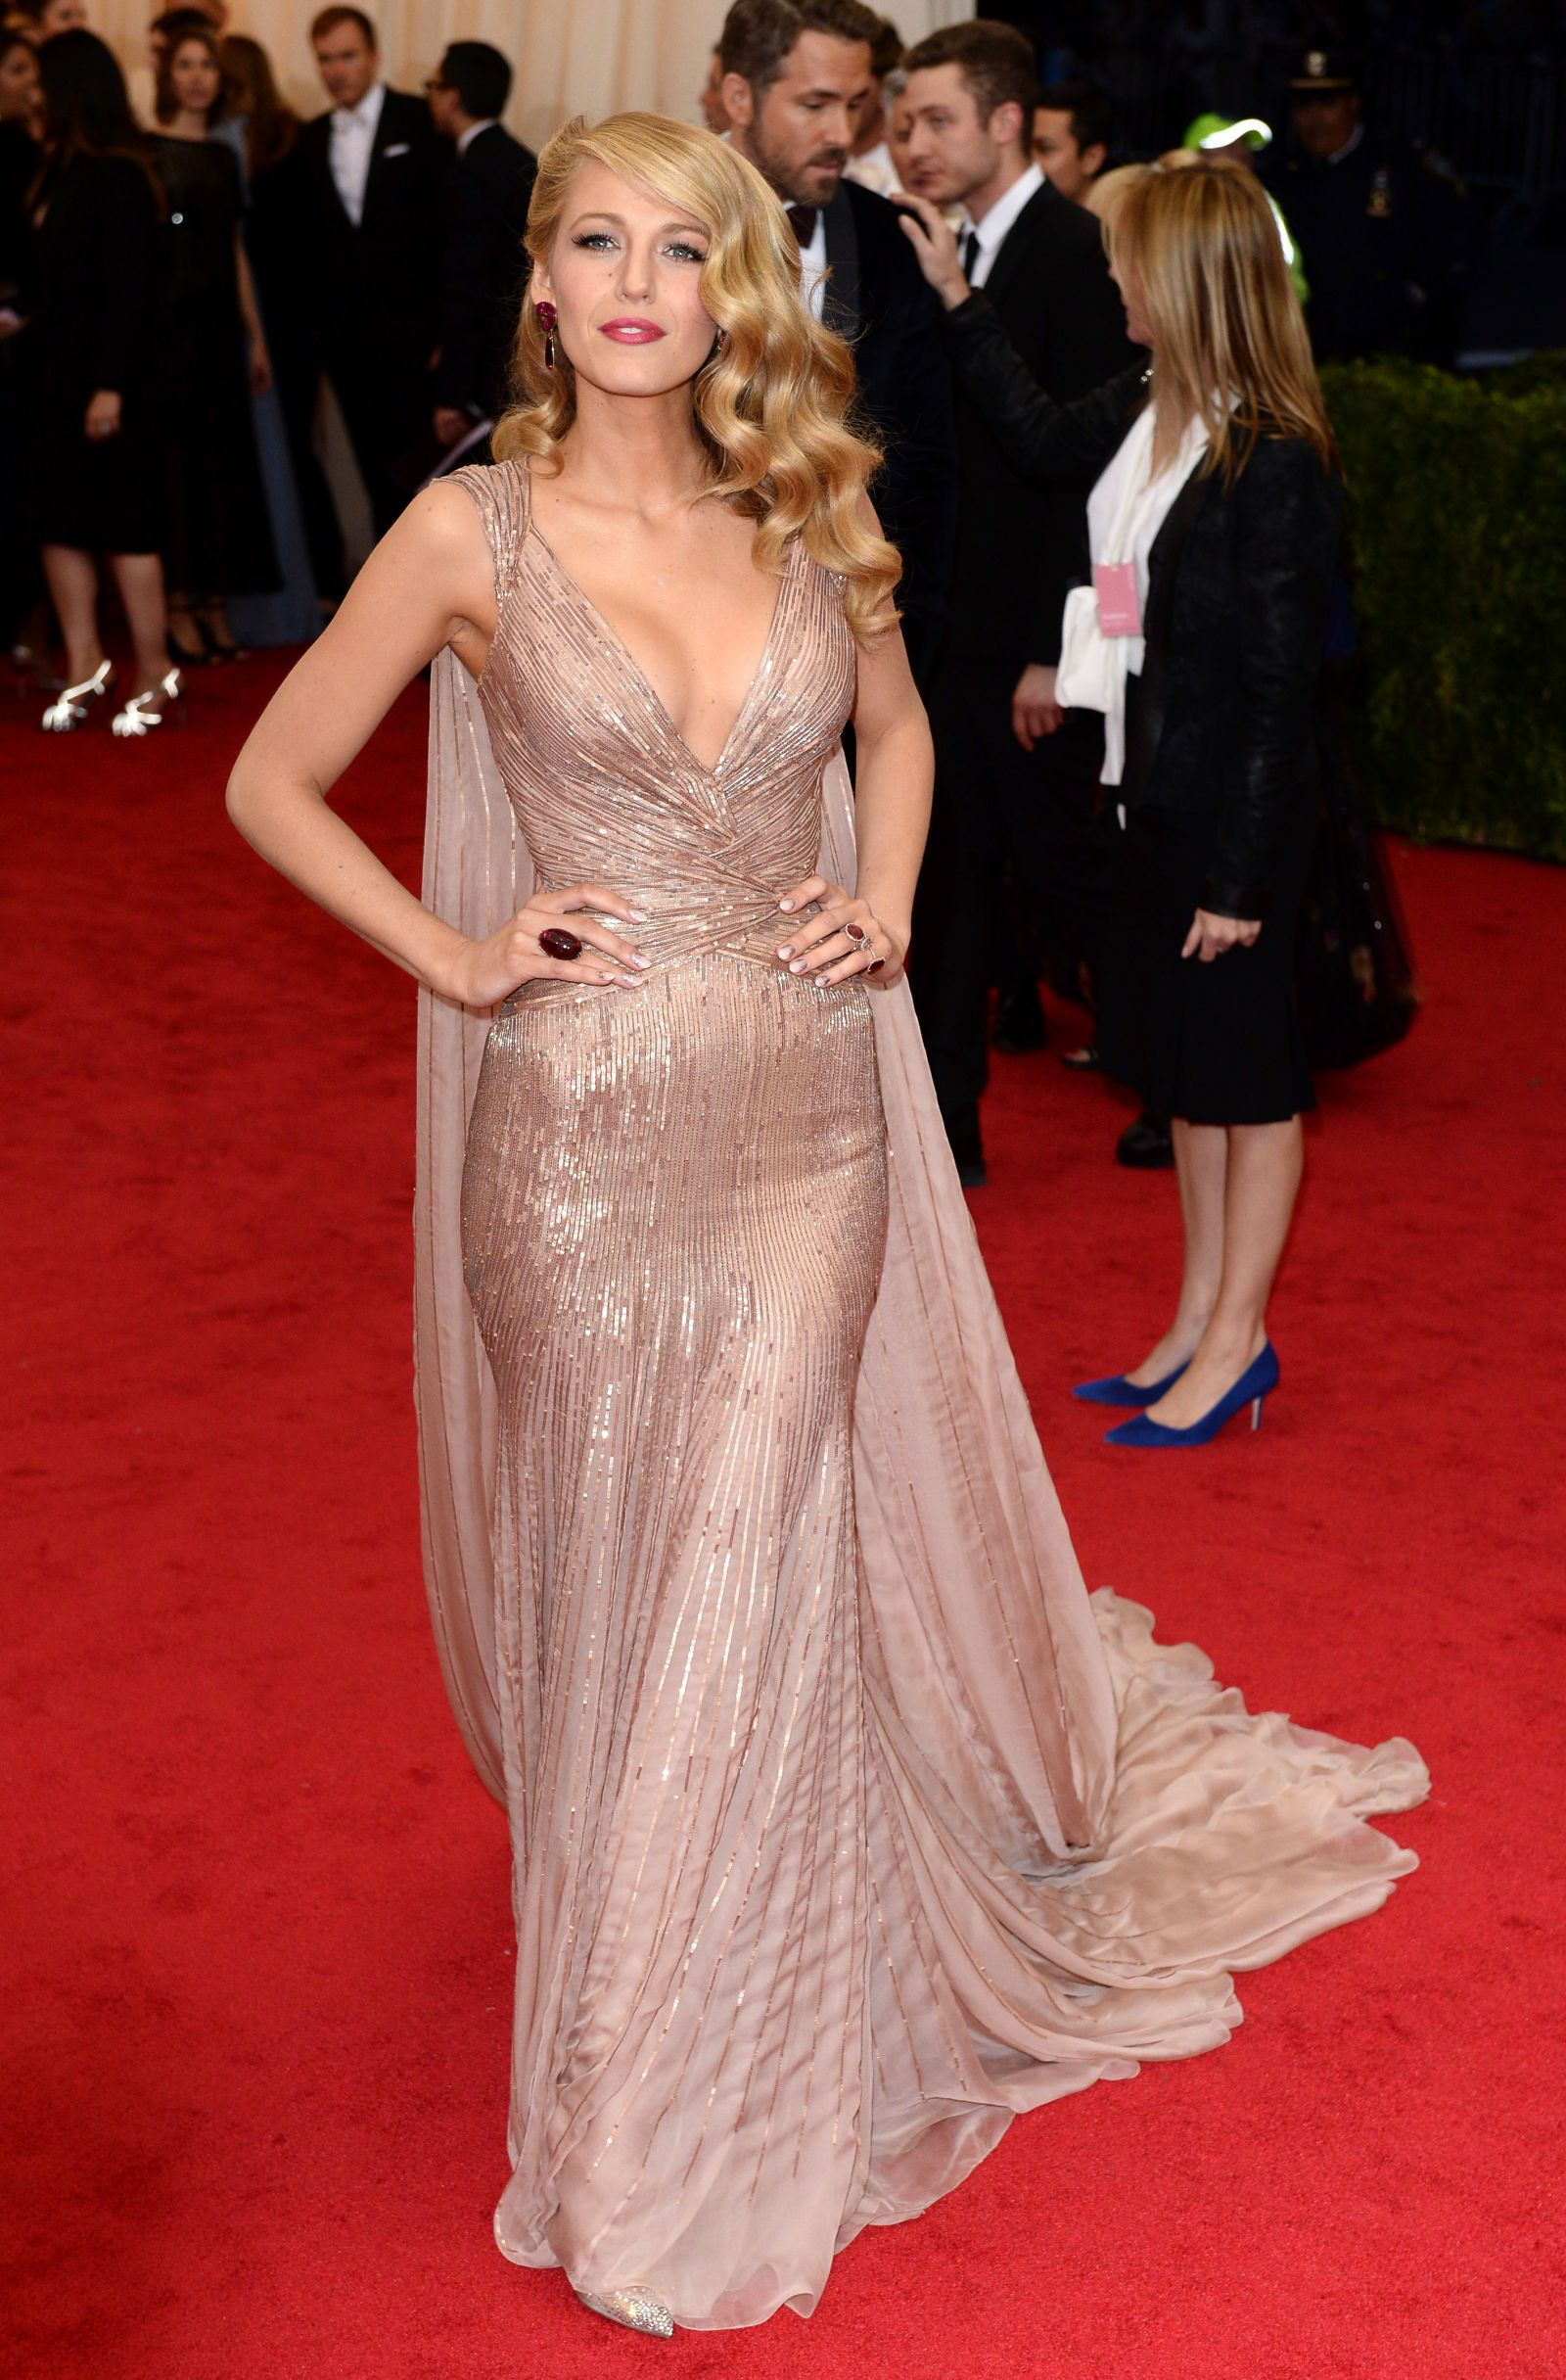 Blake Lively\'s Met Gala transformation | Met gala, Blake lively and Met